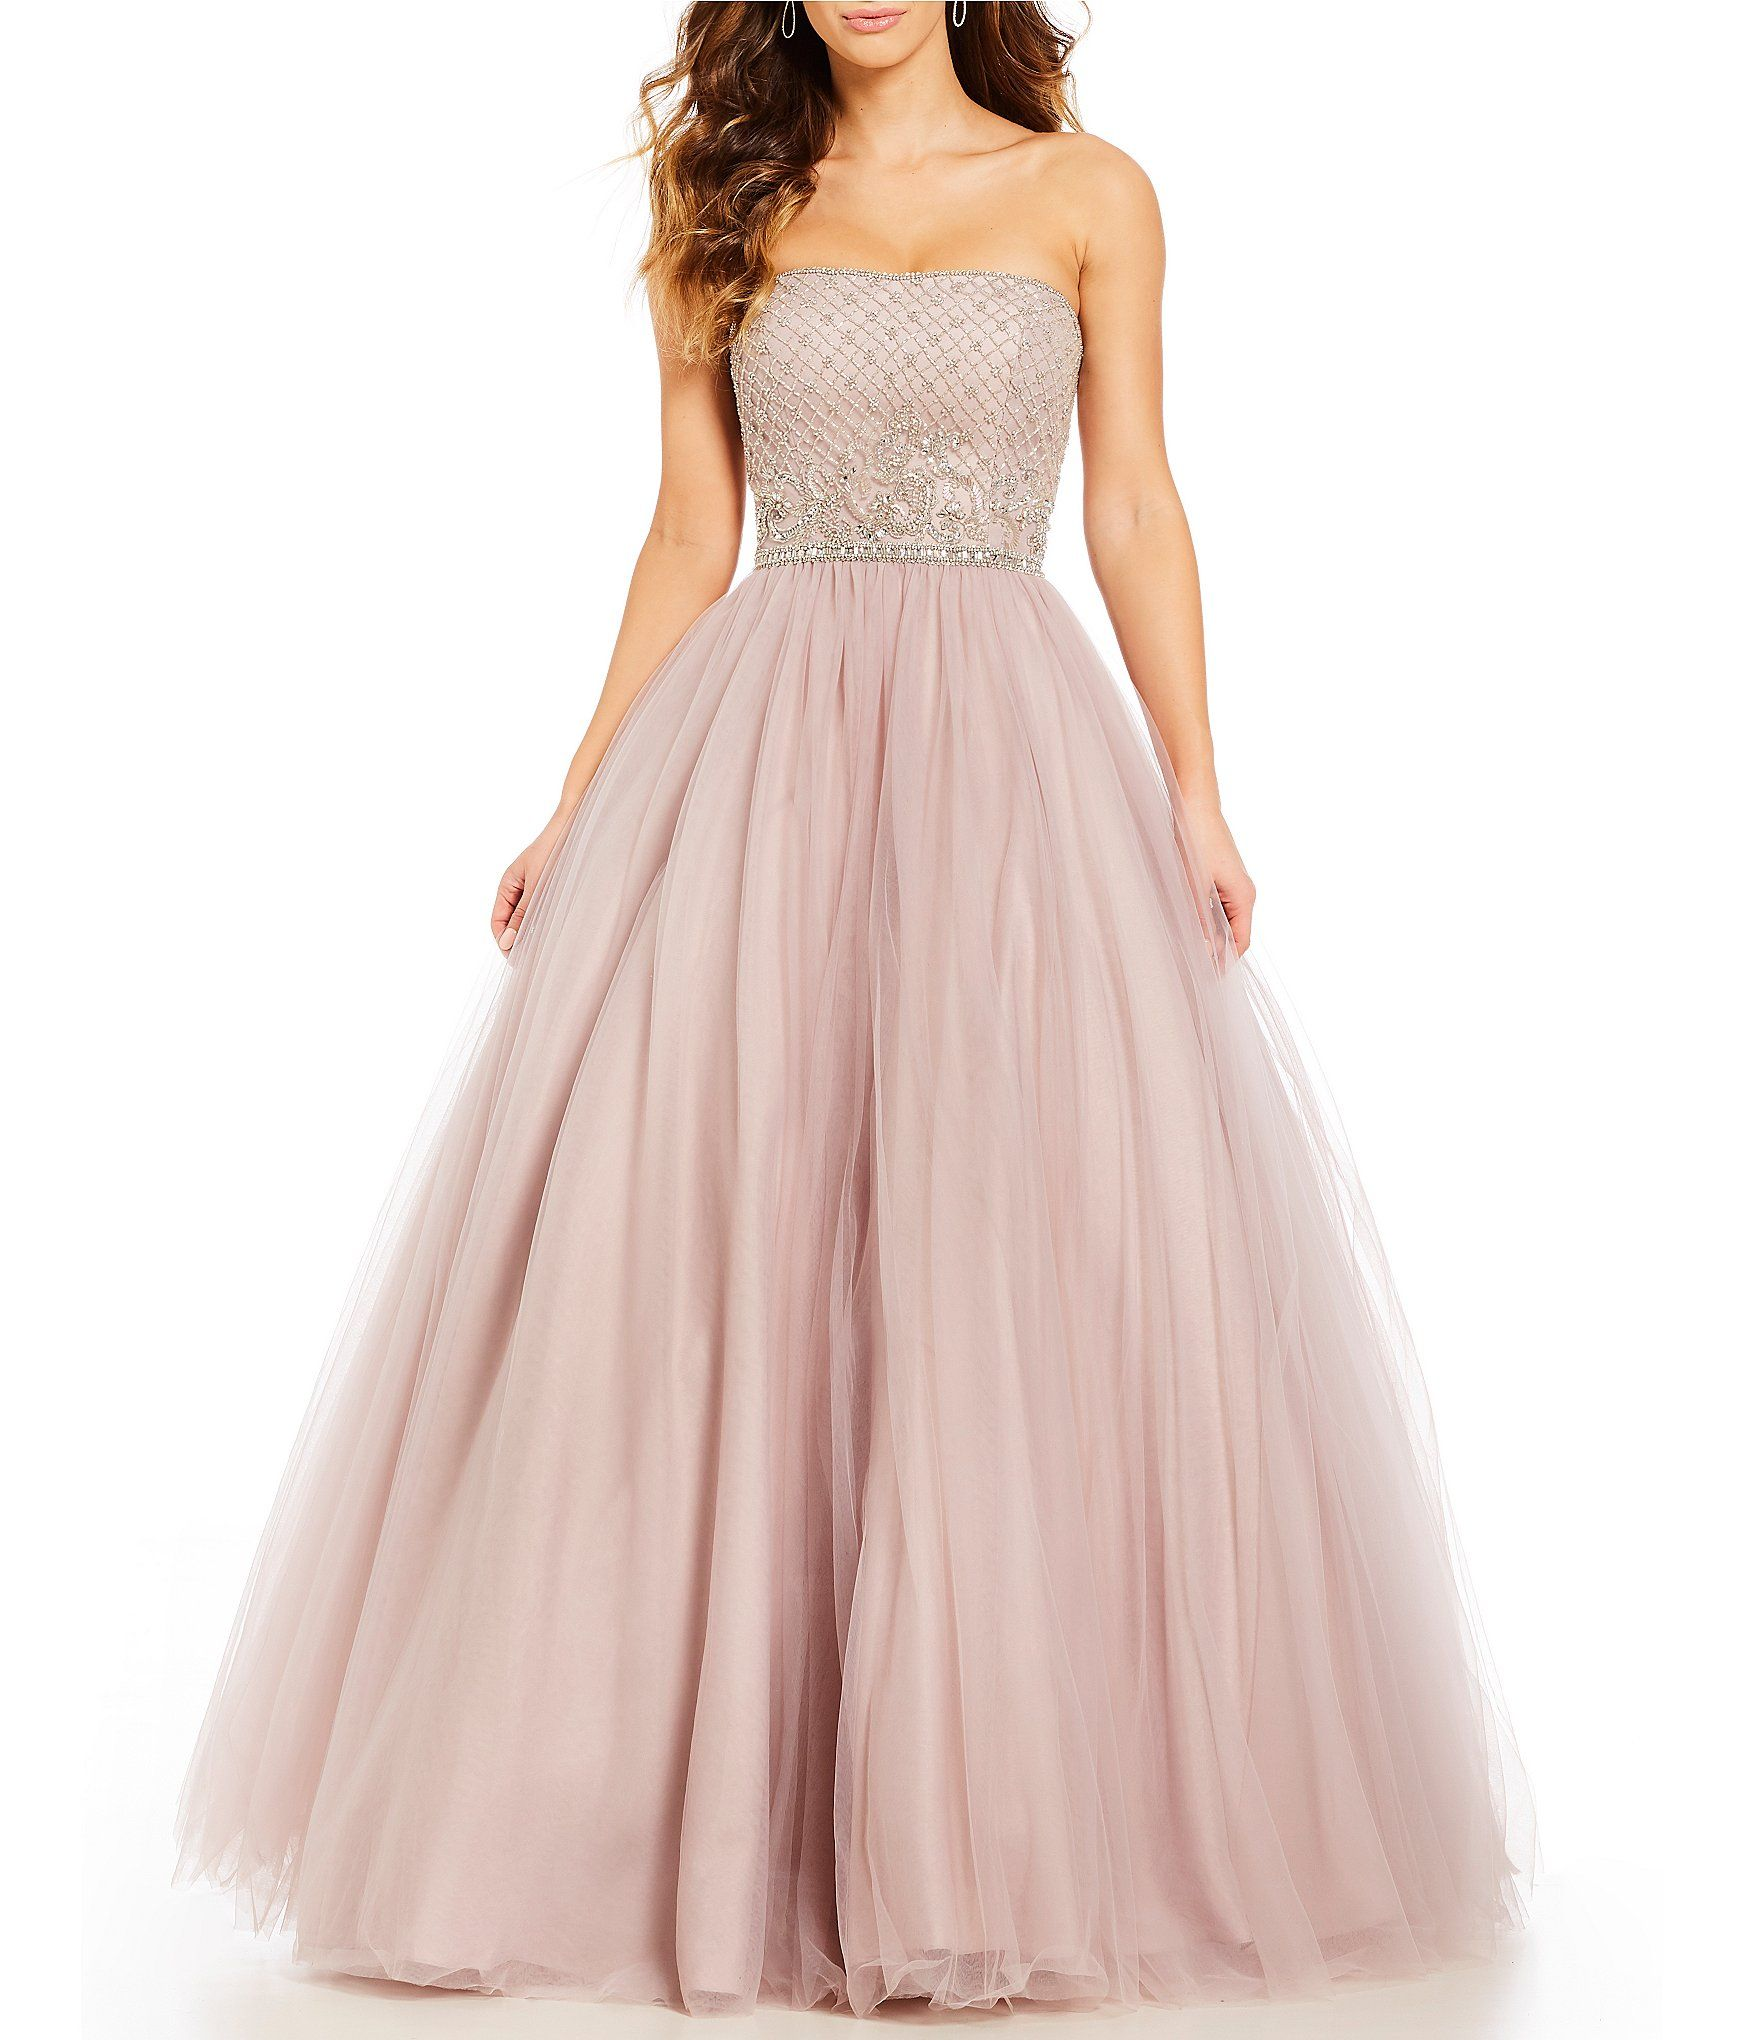 ca937c27c47 Shop for Coya Collection Strapless Beaded-Bodice Ball Gown at Dillards.com.  Visit Dillards.com to find clothing